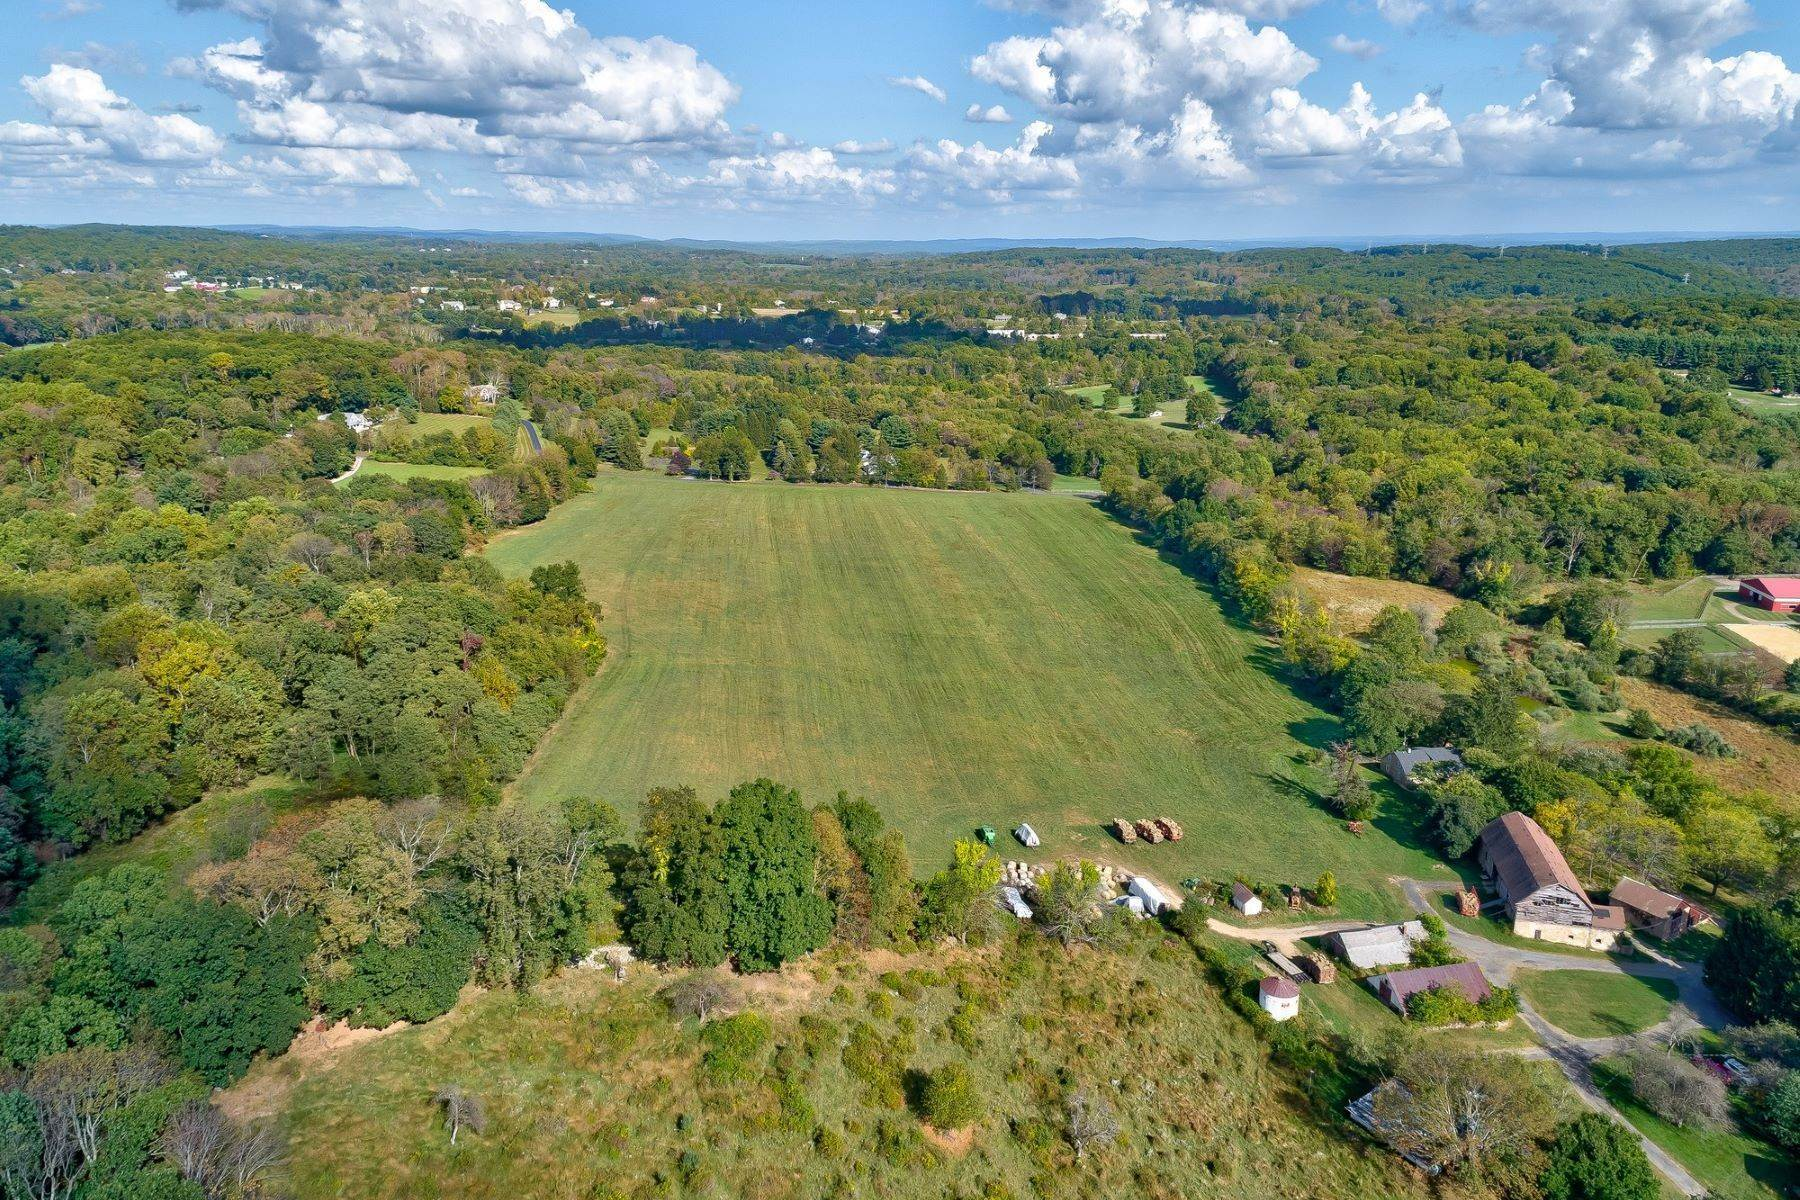 Single Family Homes for Sale at Historic 1726 Farm 26 Sutton Road, Tewksbury Township, New Jersey 07830 United States